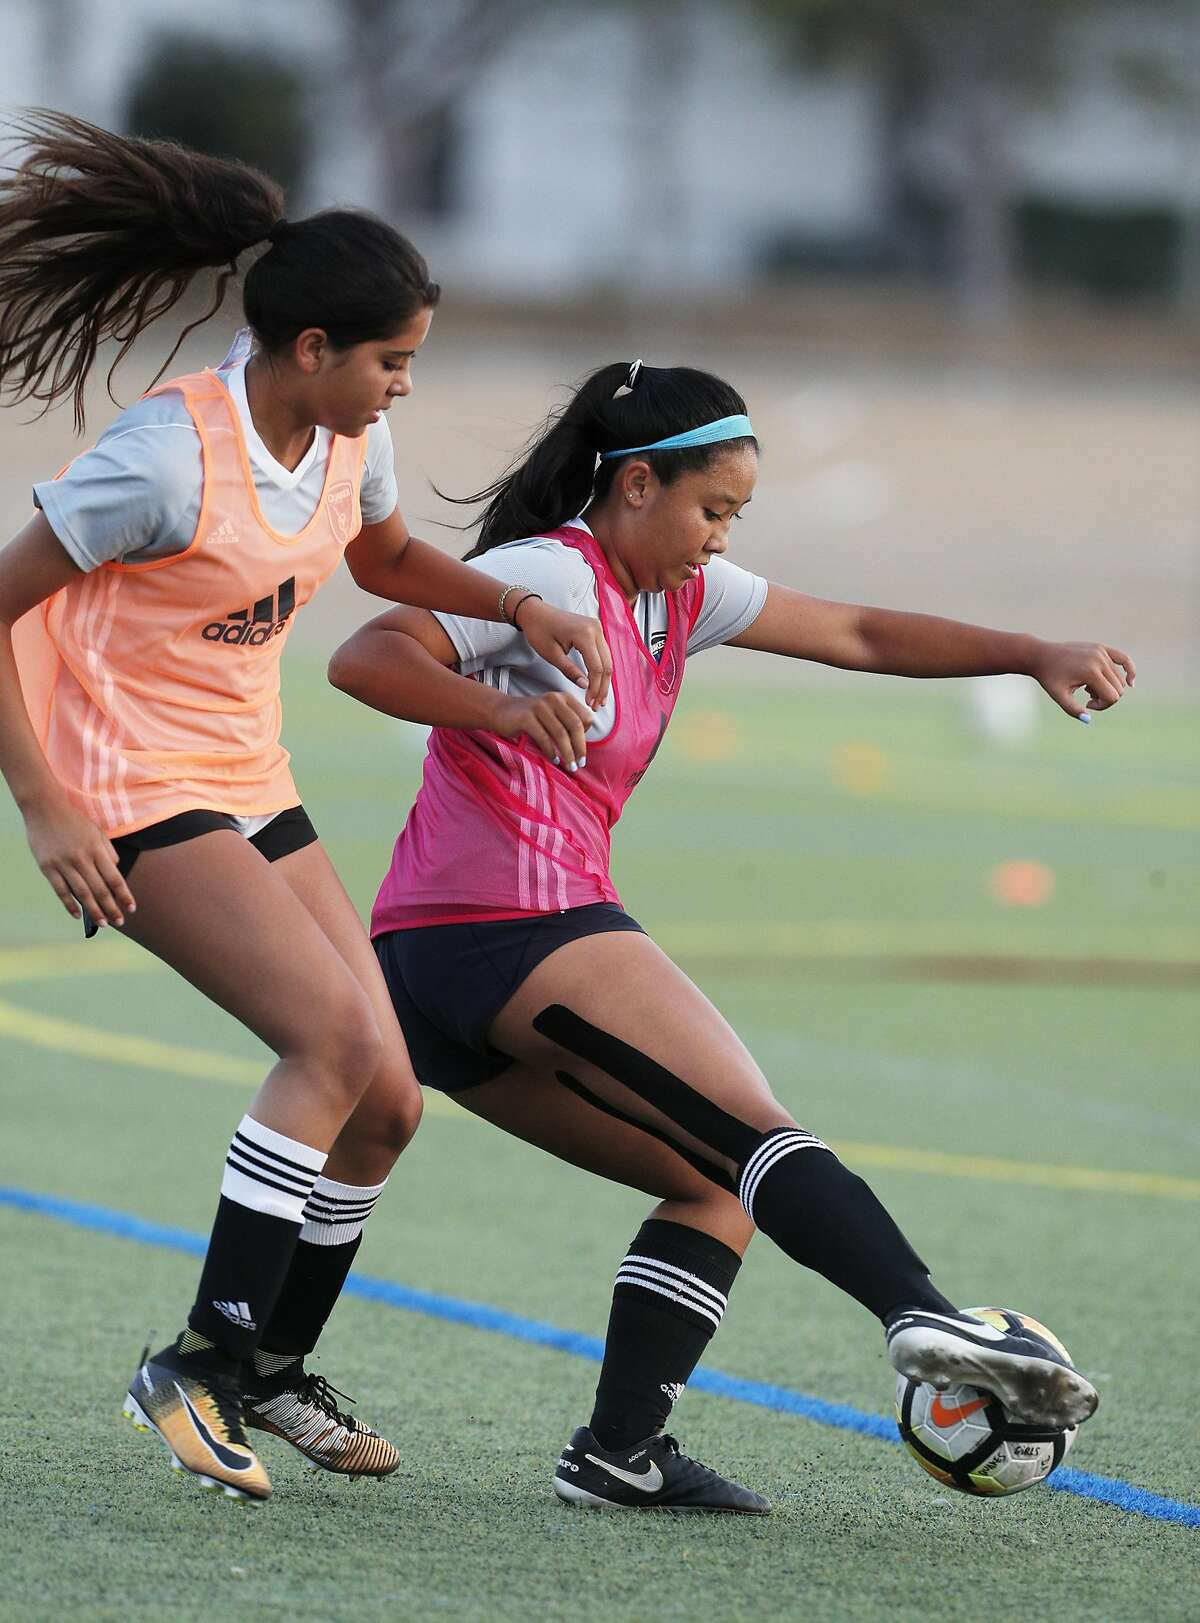 Josie Kim, right, and Isabelle Loaisiga, left, work out during San Jose Earthquakes Academy practice in Sunnyvale, Calif., on Wednesday, August 9, 2017. The San Jose Earthquakes have built one of the most successful academy programs and while the senior team isn't very good, the future of the Earthquakes - and hopefully American soccer - is promising thanks to the infrastructure that MLS is supporting. during San Jose Earthquakes Academy practice in Sunnyvale, Calif., on Wednesday, August 9, 2017. The San Jose Earthquakes have built one of the most successful academy programs and while the senior team isn't very good, the future of the Earthquakes - and hopefully American soccer - is promising thanks to the infrastructure that MLS is supporting.